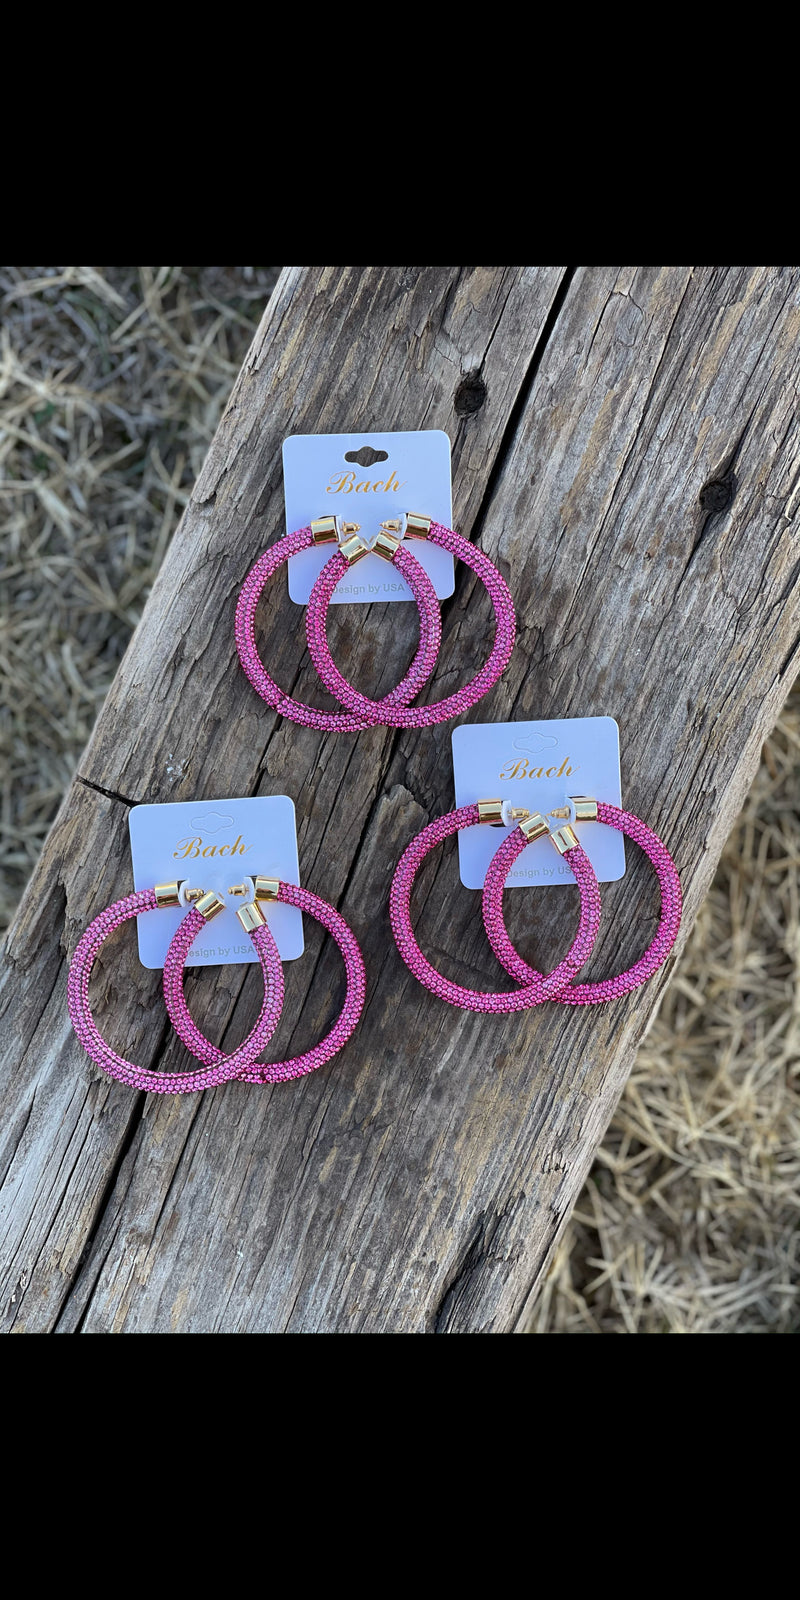 Alyssa Pink Rhinestone Hoop Earrings